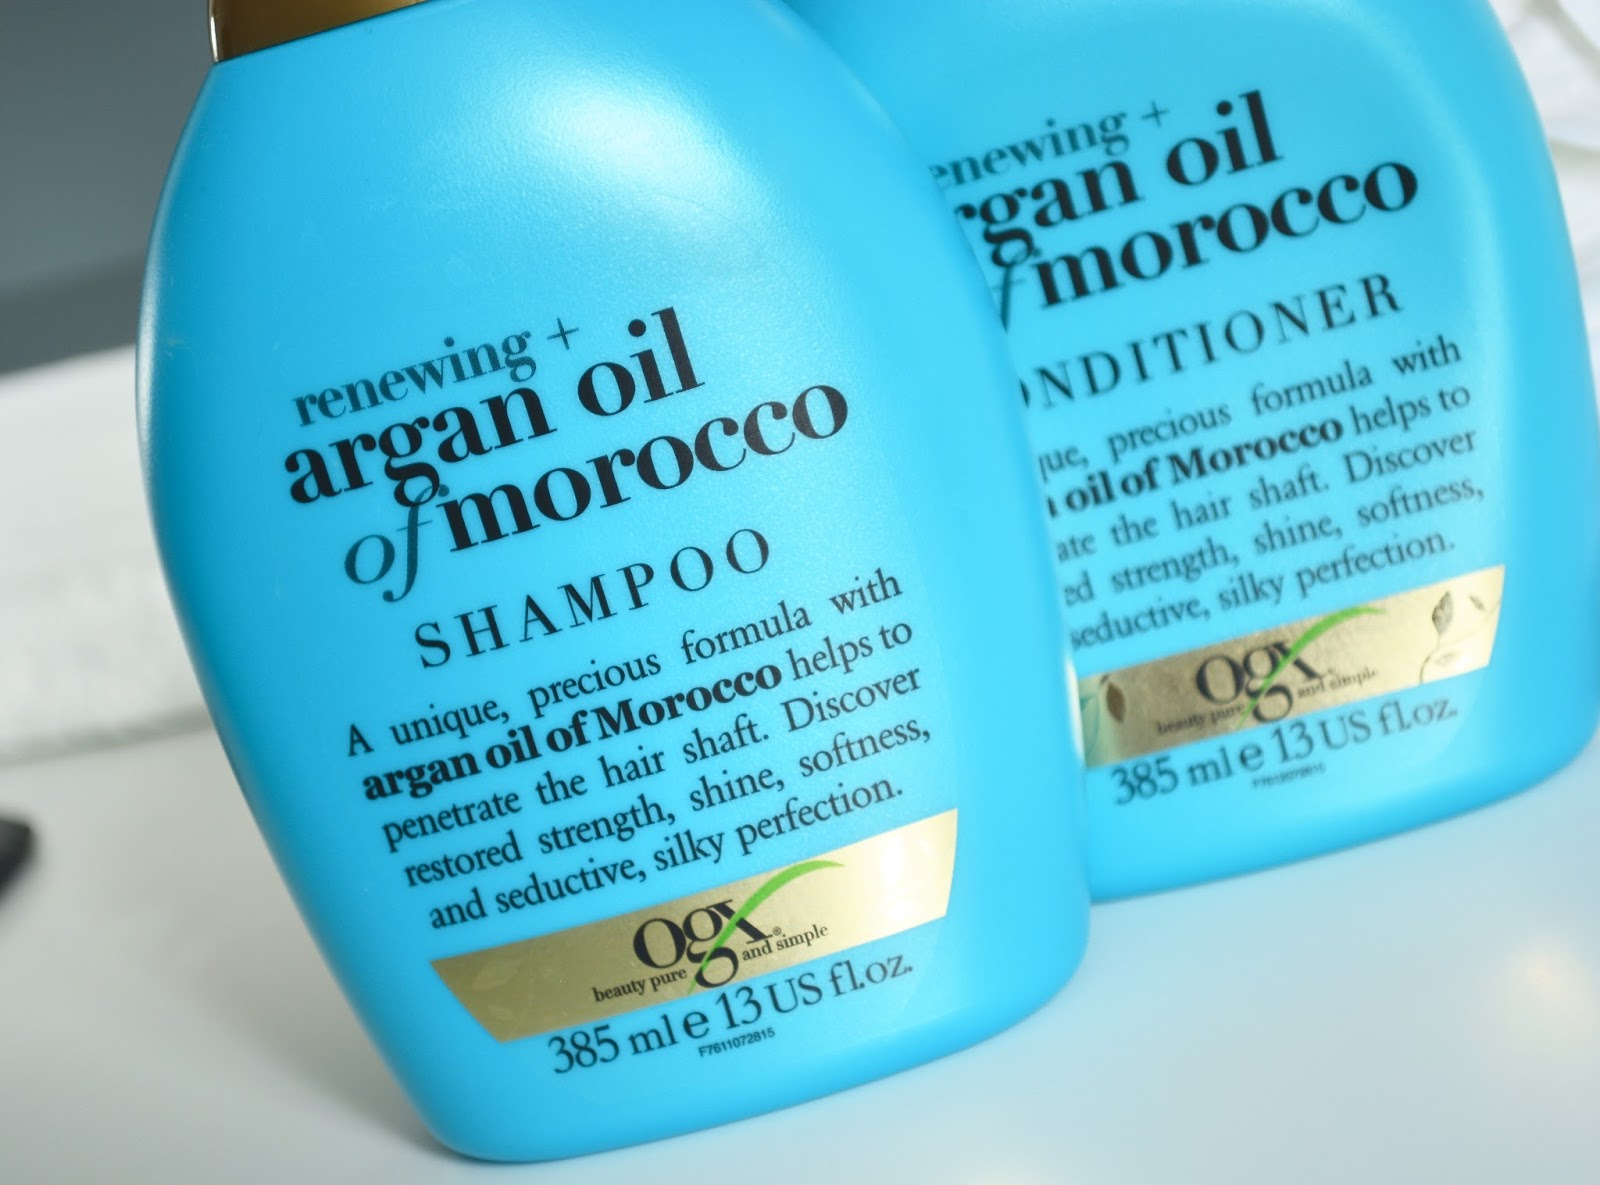 OGX Renewing Argan Oil of Morocco Shampoo & Conditioner